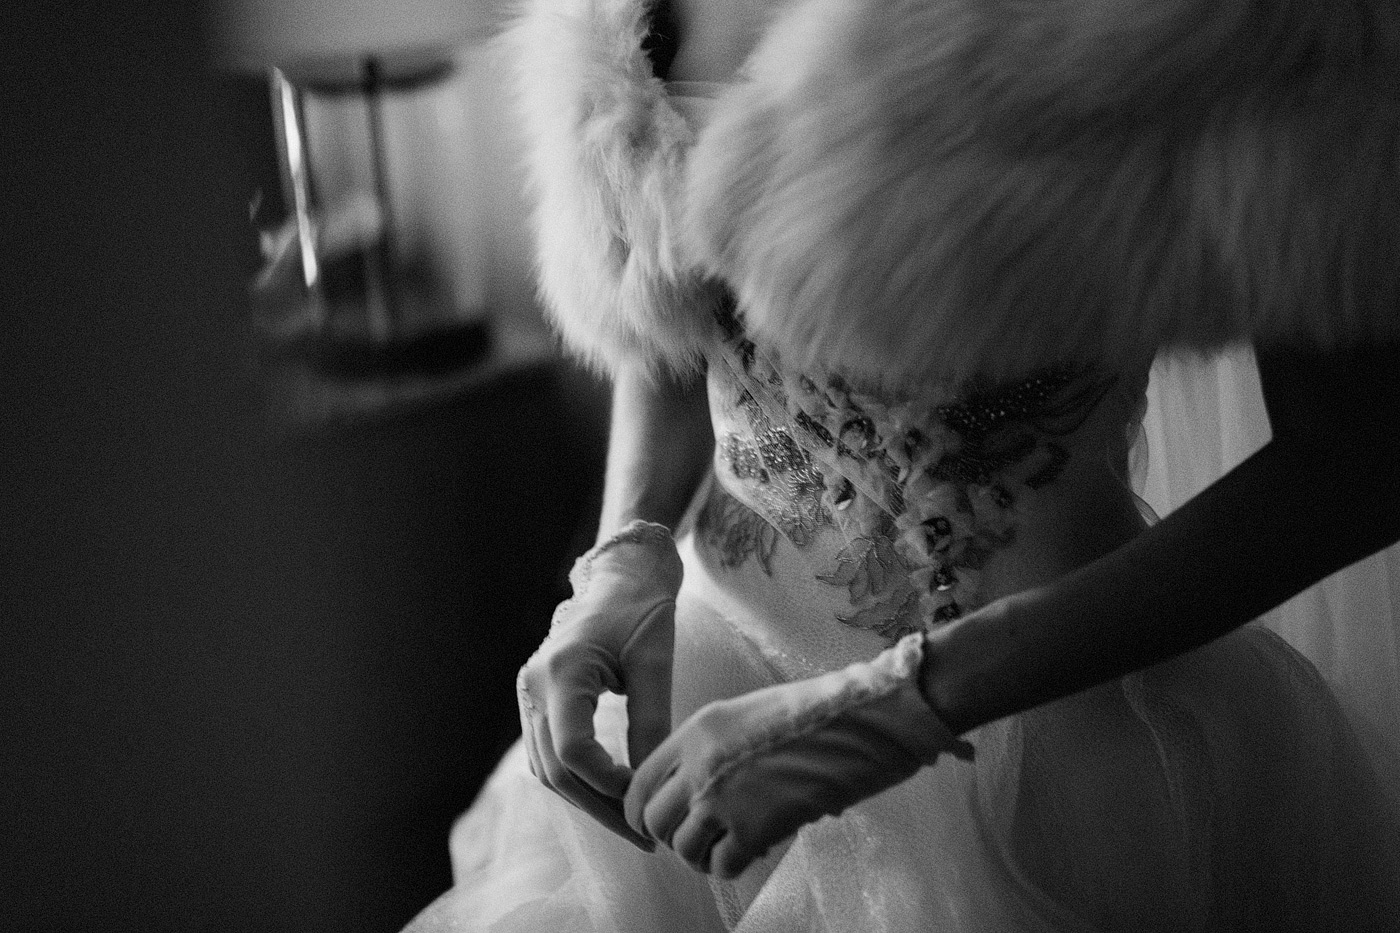 artistic creative wedding dress detail shot san francisco califo